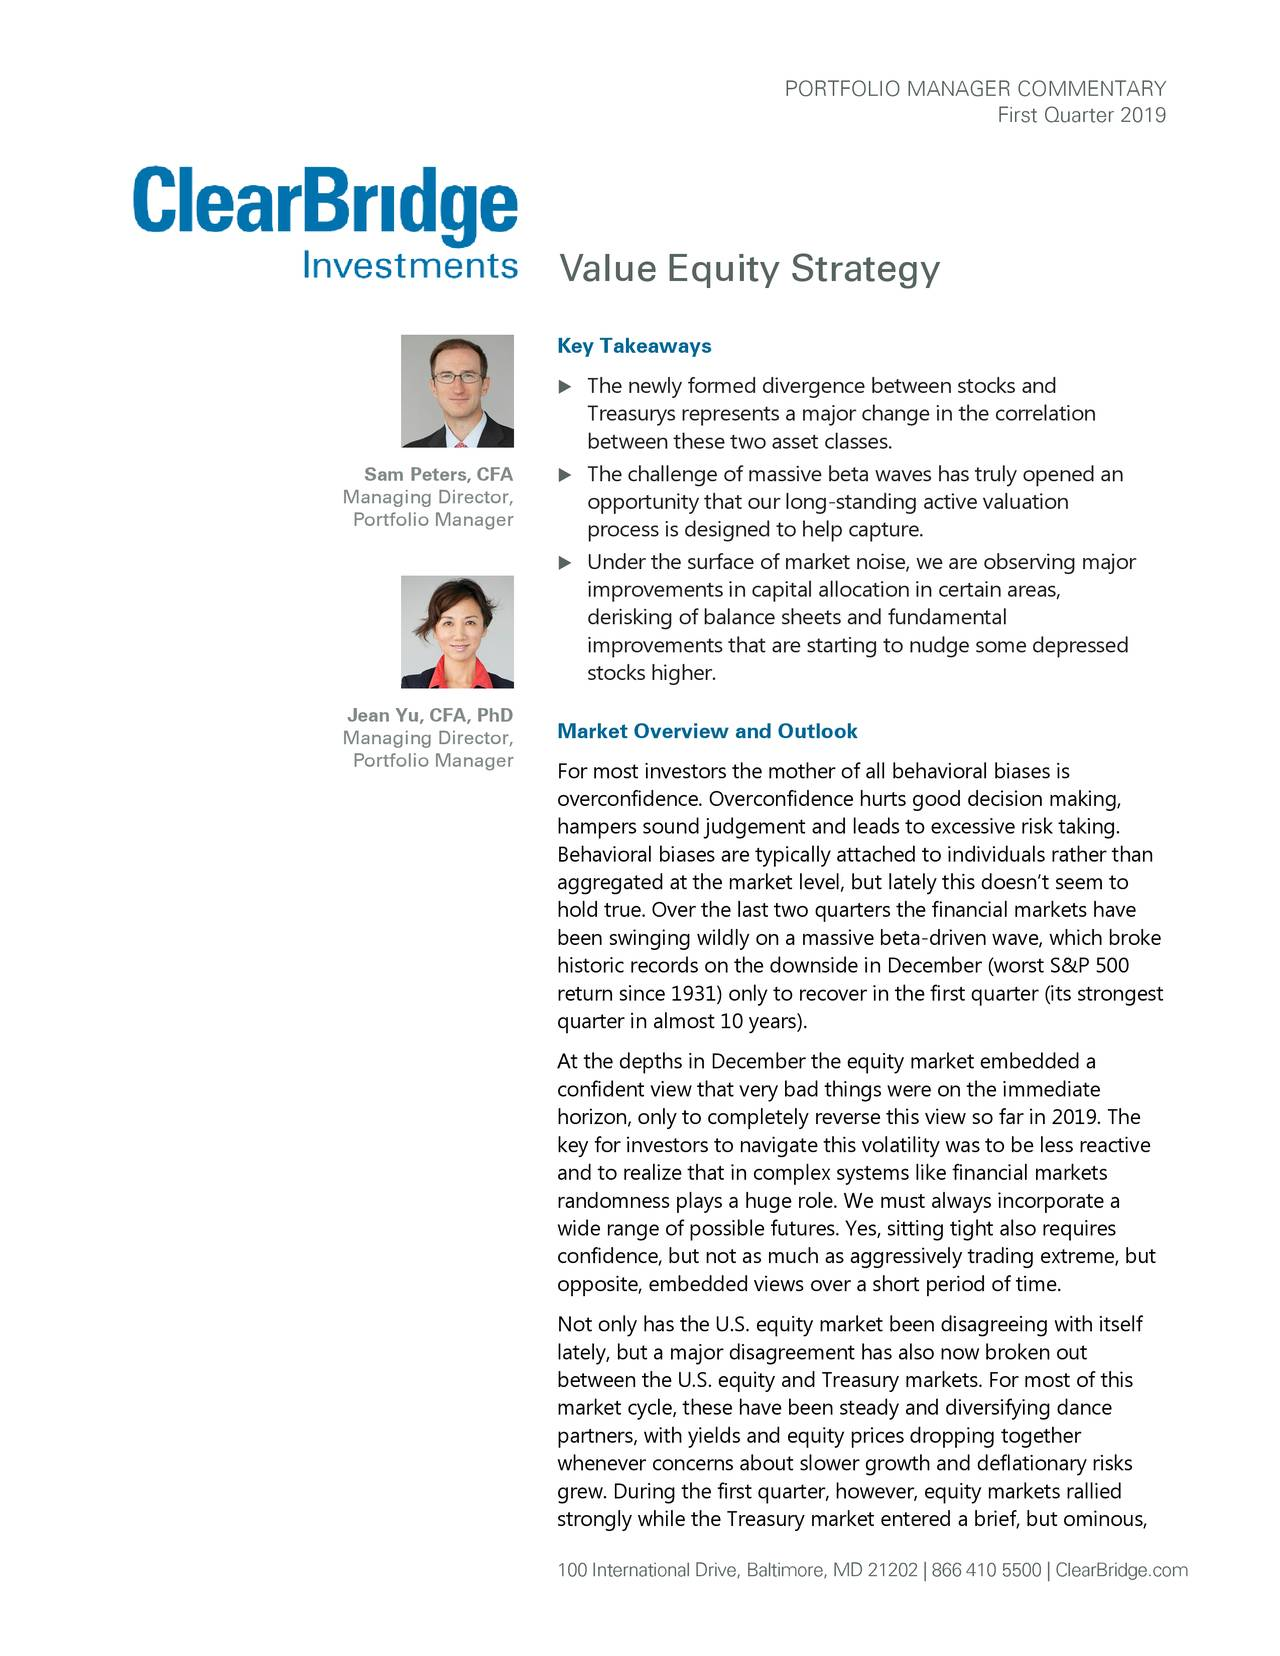 First Quarter 2019 Value Equity Strategy Key Takeaways  The newly formed divergence between stocks and Treasurys represents a major change in the correlation between these two asset classes . Sam Peters, CFA  The challenge of massive beta waves has truly opened an Managing Director, opportunity that our long- standing active valuation Portfolio Manager process is designed to help capture.  Under the surface of market noise, we are observing major improvements in capital allocation in certain areas, derisking of balance sheets and fundamental improvements that are starting to nudge some depressed stocks higher. Jean Yu, CFA, PhD Market Overview and Outlook Managing Director, Portfolio Manager For most investors the mother of all behavioral biases is overconfidence. Overconfidence hurts good decision making, hampers sound judgement and leads to excessive risk taking. Behavioral biases are typically attached to individuals rather than aggregated at the market level, but lately this doesn't seem to hold true. Over the last two quarters the financial markets have been swinging wildly on a massive beta-driven wave, which broke historic records on the downside in December (worst S&P 500 return since 1931) only to recover in the first quarter (its strongest quarter in almost 10 years). At the depths in December the equity market embedded a confident view that very bad things were on the immediate horizon, only to completely reverse this view so far in 2019. The key for investors to navigate this volatility was to be less reactive and to realize that in complex systems like financial markets randomness plays a huge role. We must always incorporate a wide range of possible futures. Yes, sitting tight also requires confidence, but not as much as aggressively trading extreme, but opposite, embedded views over a short period of time. Not only has the U.S. equity market been disagreeing with itself lately, but a major disagreement has also now broken out between the U.S. equity and Treasury markets. For most of this market cycle, these have been steady and diversifying dance partners, with yields and equity prices dropping together whenever concerns about slower growth and deflationary risks grew. During the first quarter, however, equity markets rallied strongly while the Treasury market entered a brief, but ominous, 100 International Drive, Baltimore, MD 21202 | 866 410 5500 | ClearBridge.com